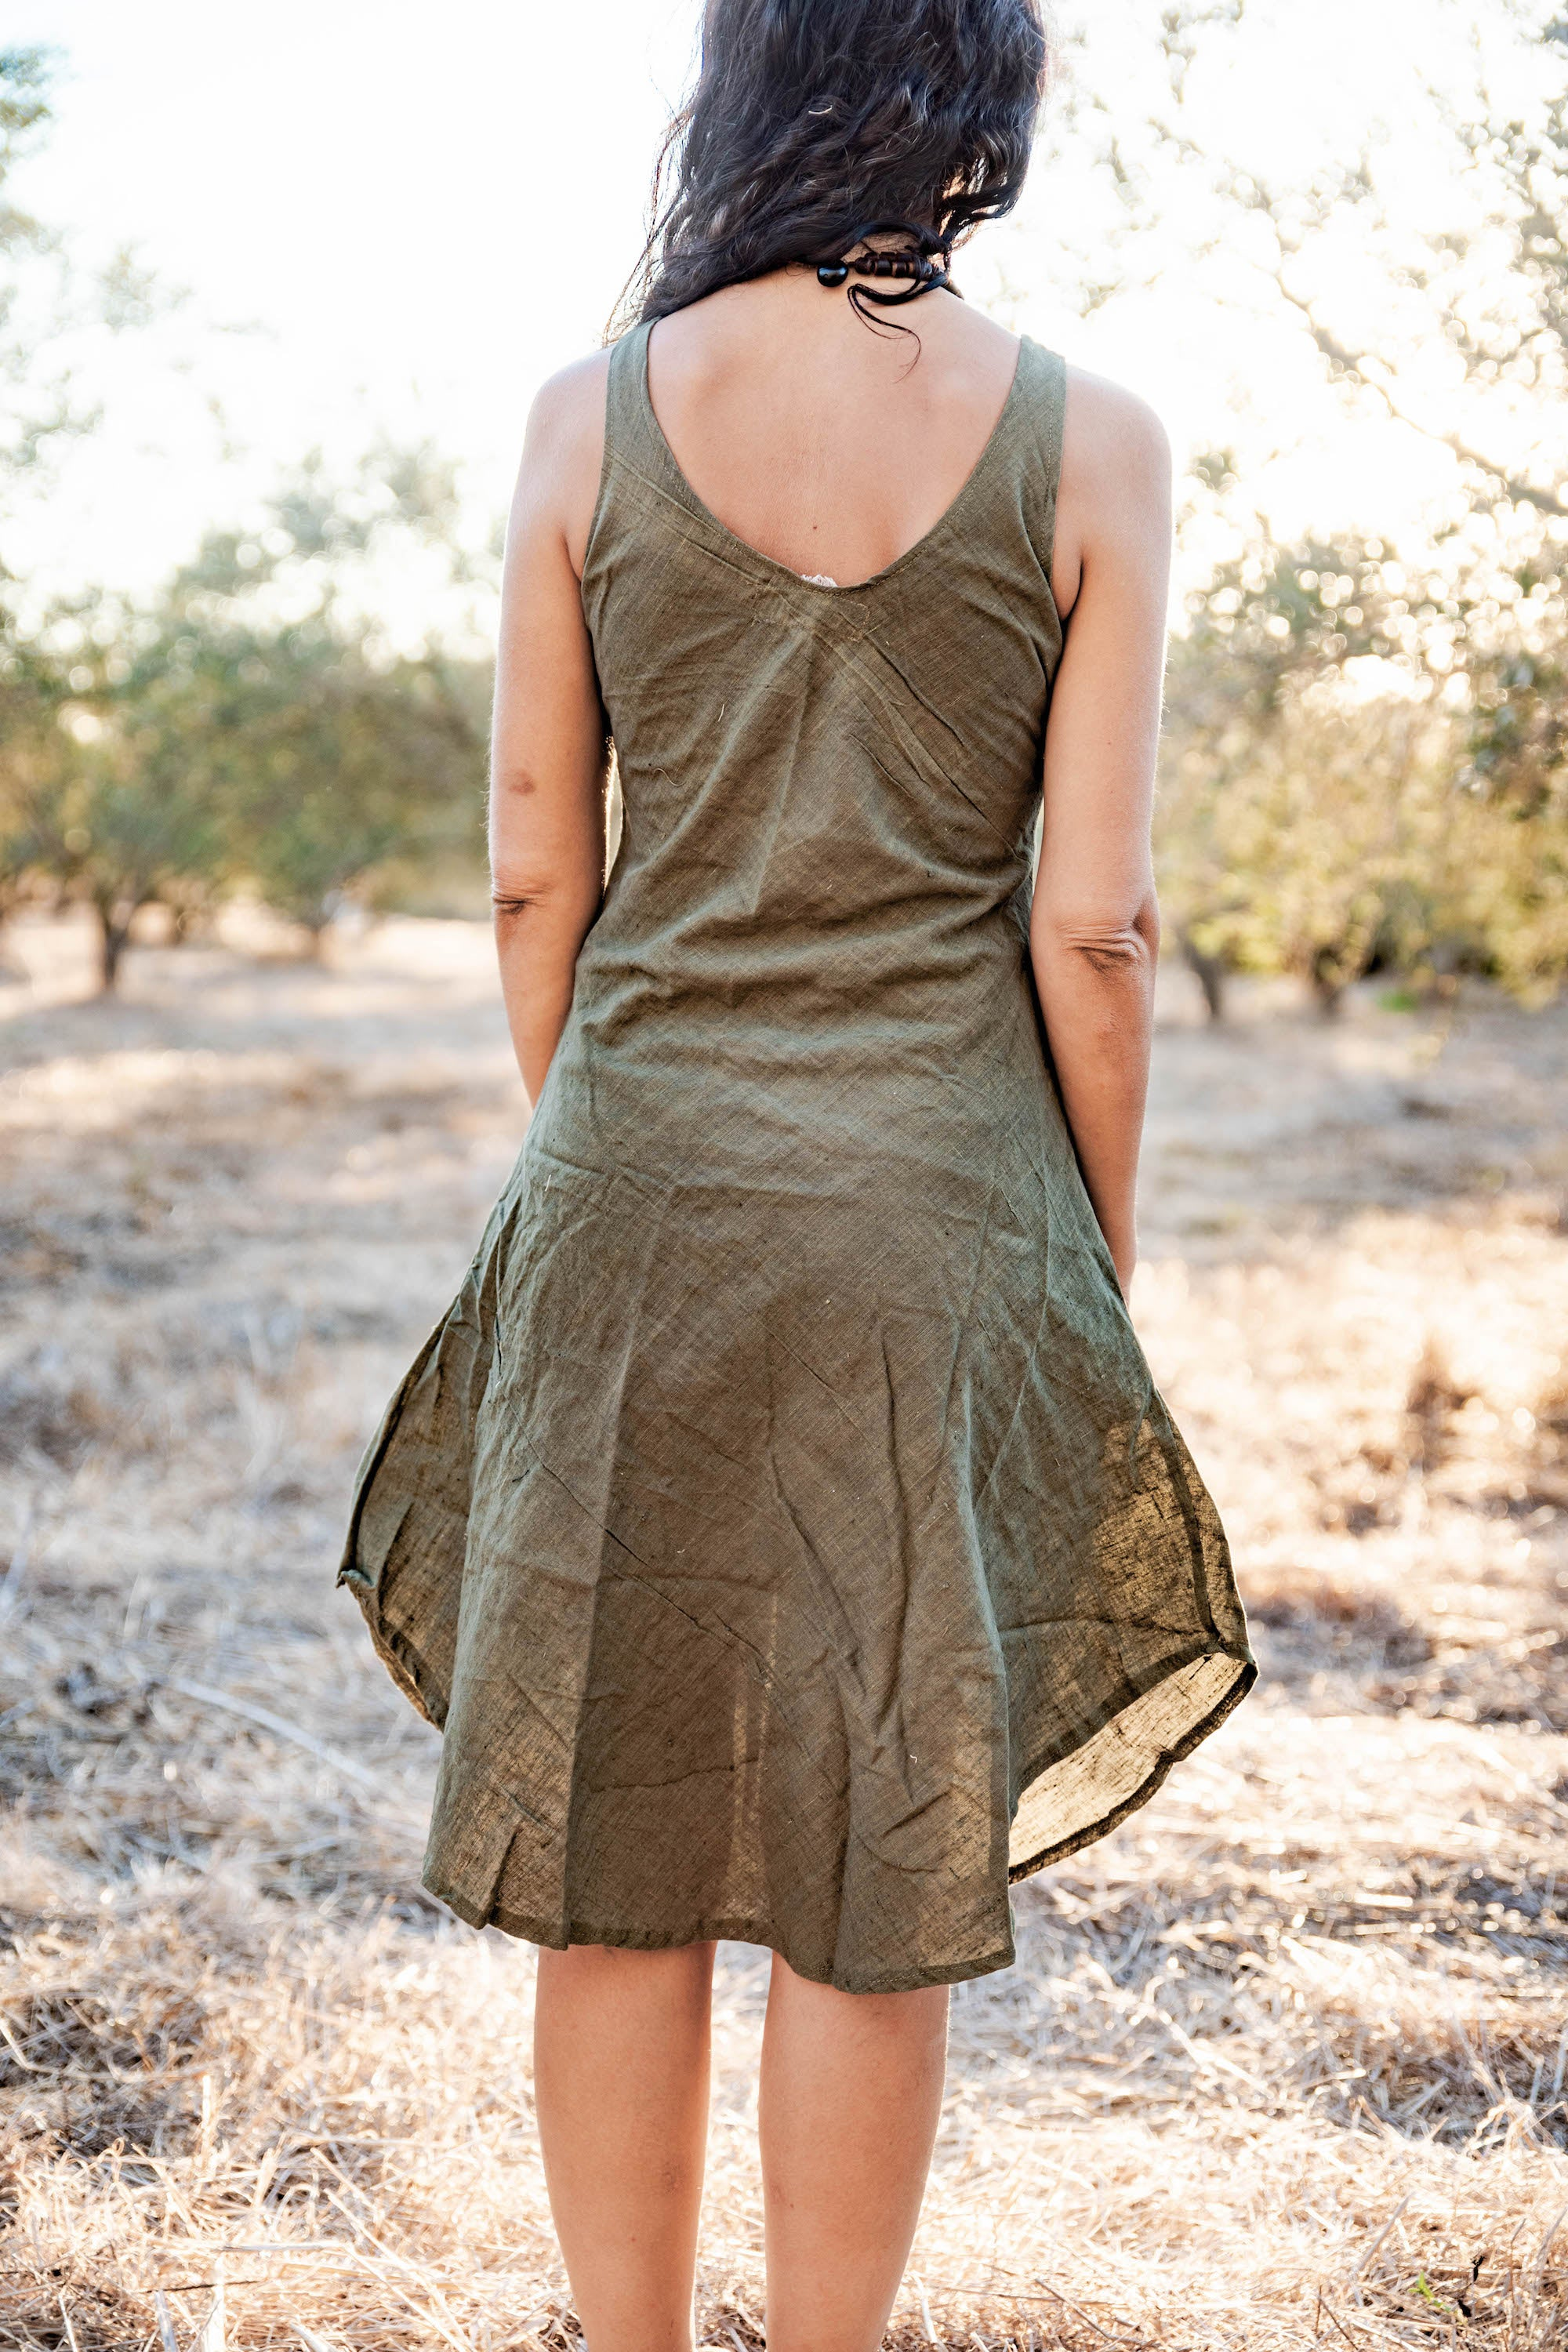 Kalya Dress • Handwoven Cotton • Natural Dye Green • Size XS